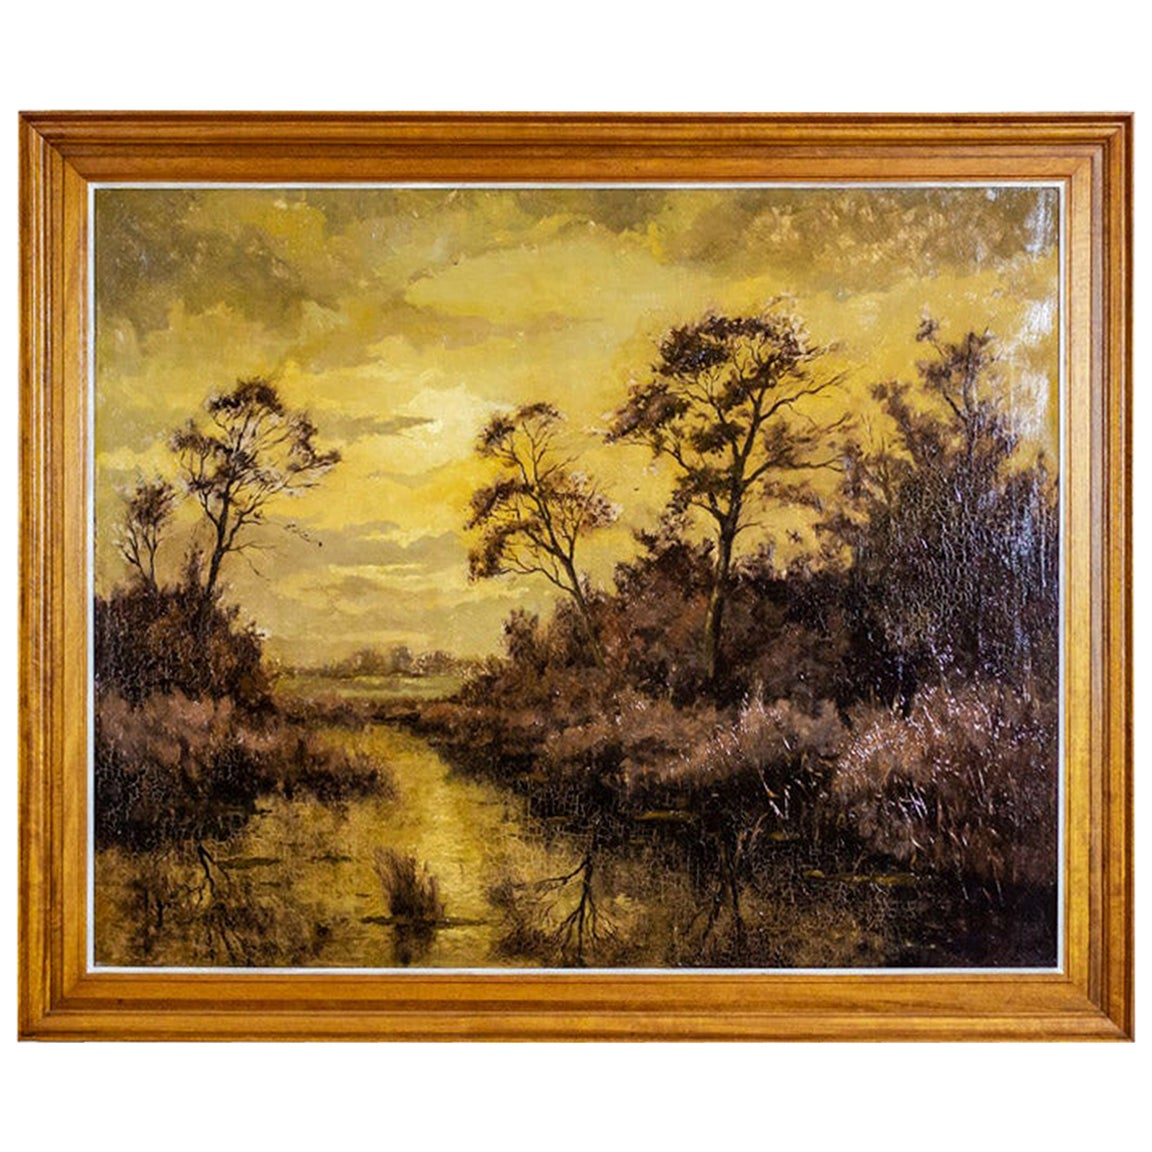 20th Century Oil Painting Depicting a Landscape